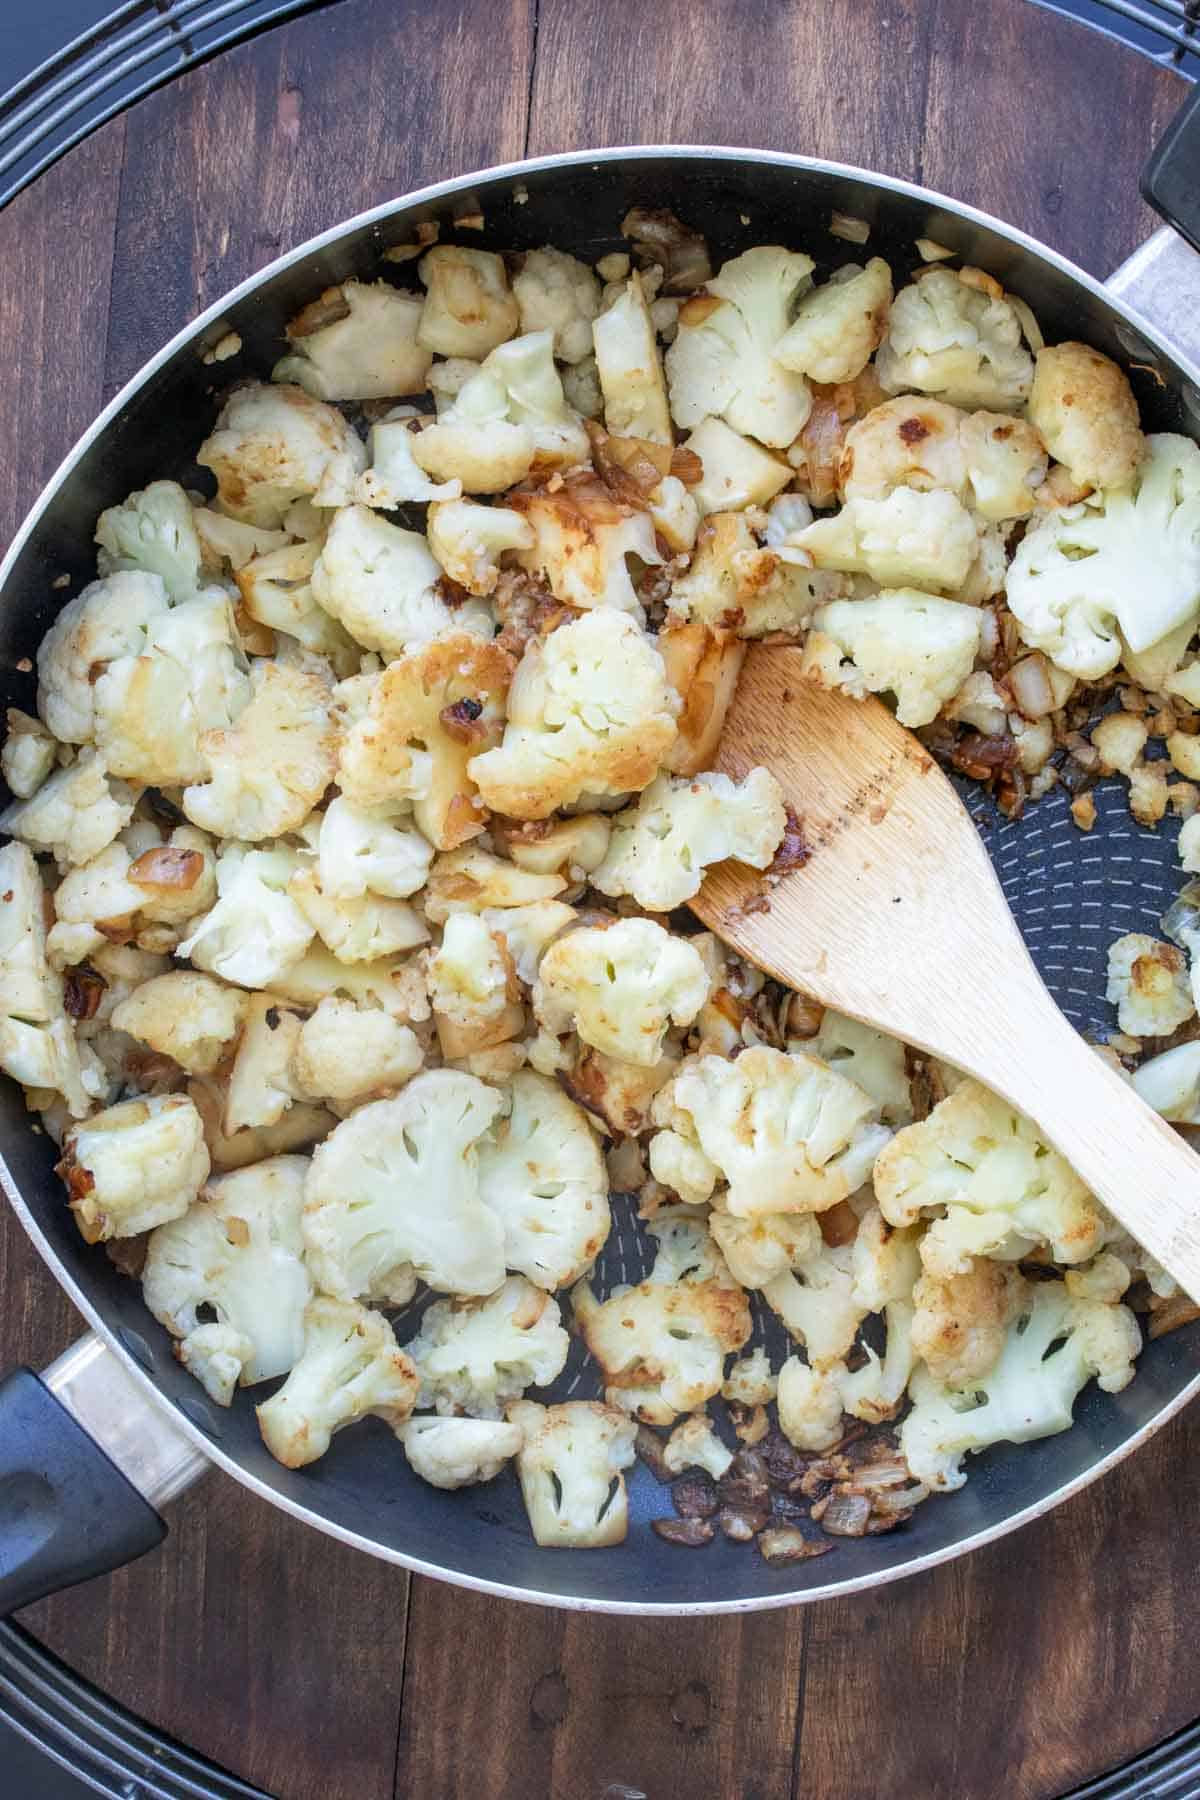 Wooden spoon mixing cauliflower in a saute pan